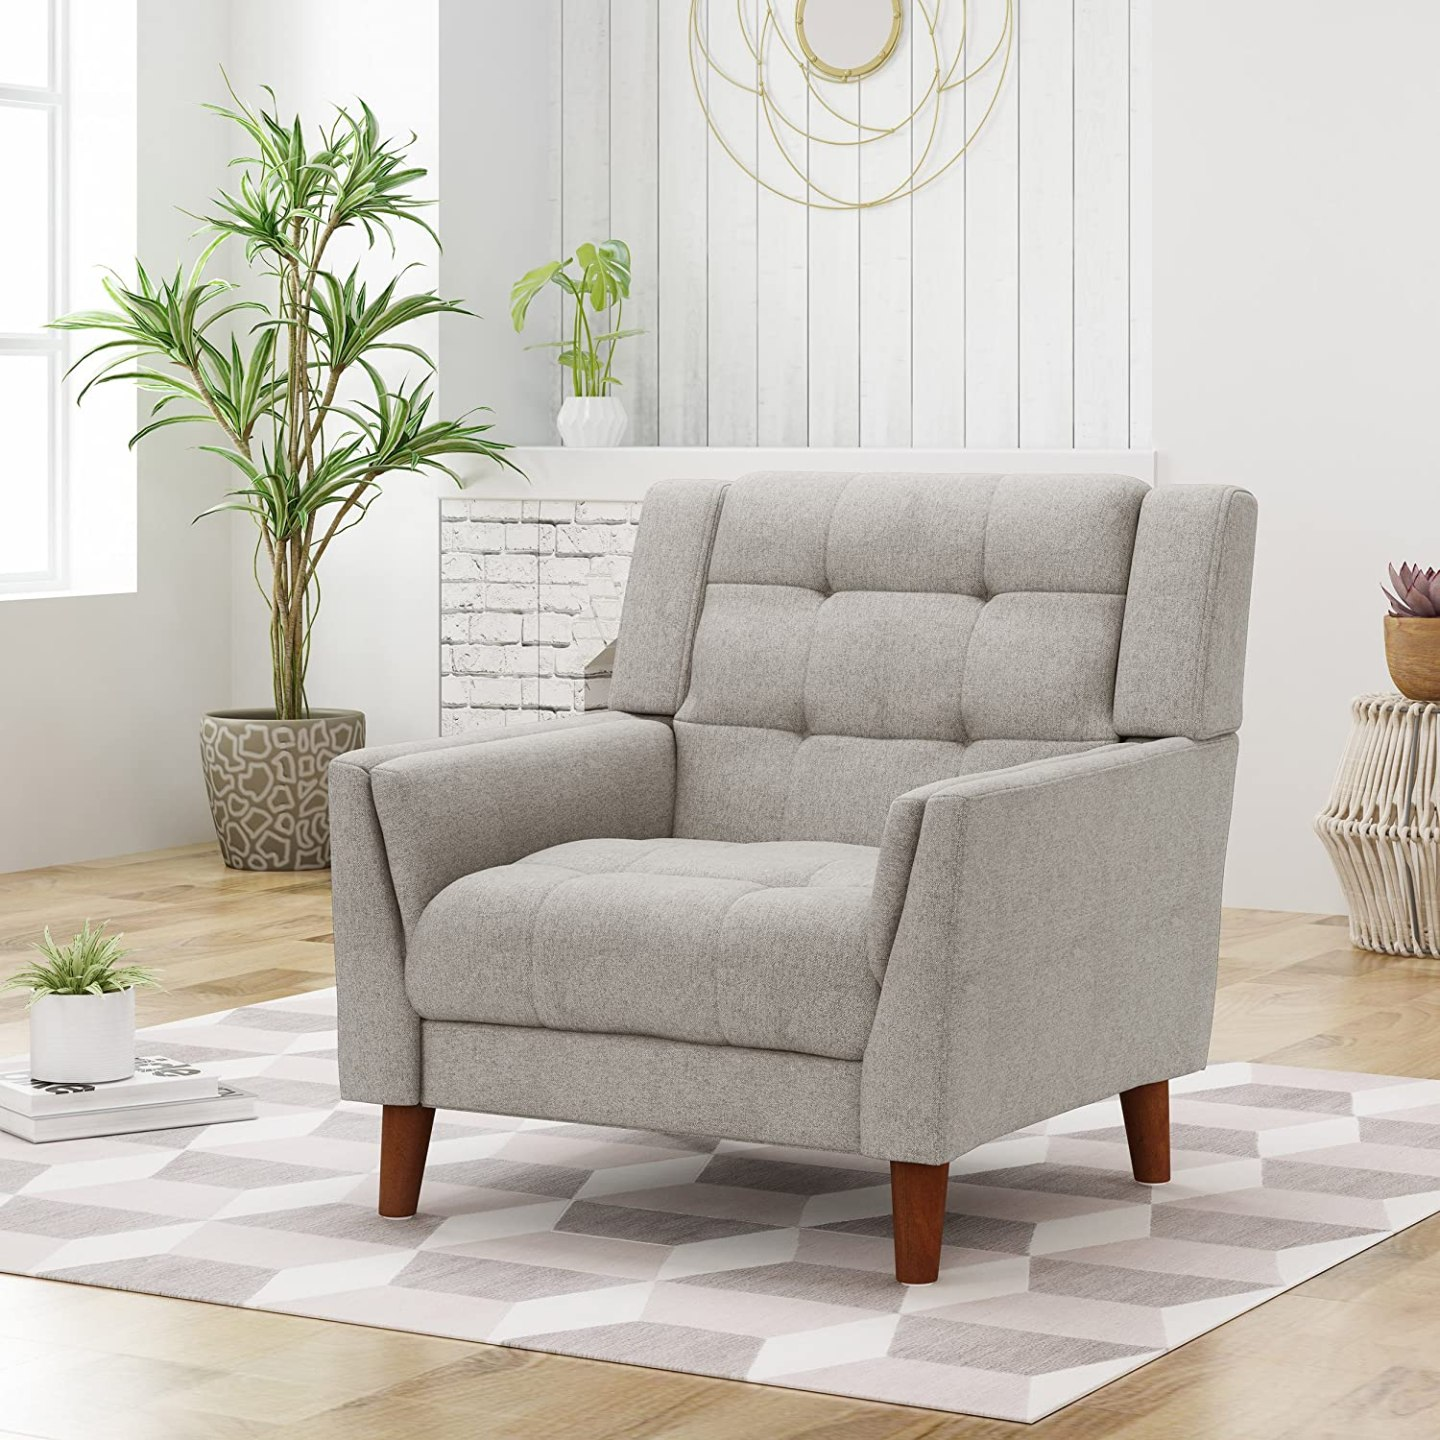 Modern Arm Chair cheap for sale - Armchair beige design for living room